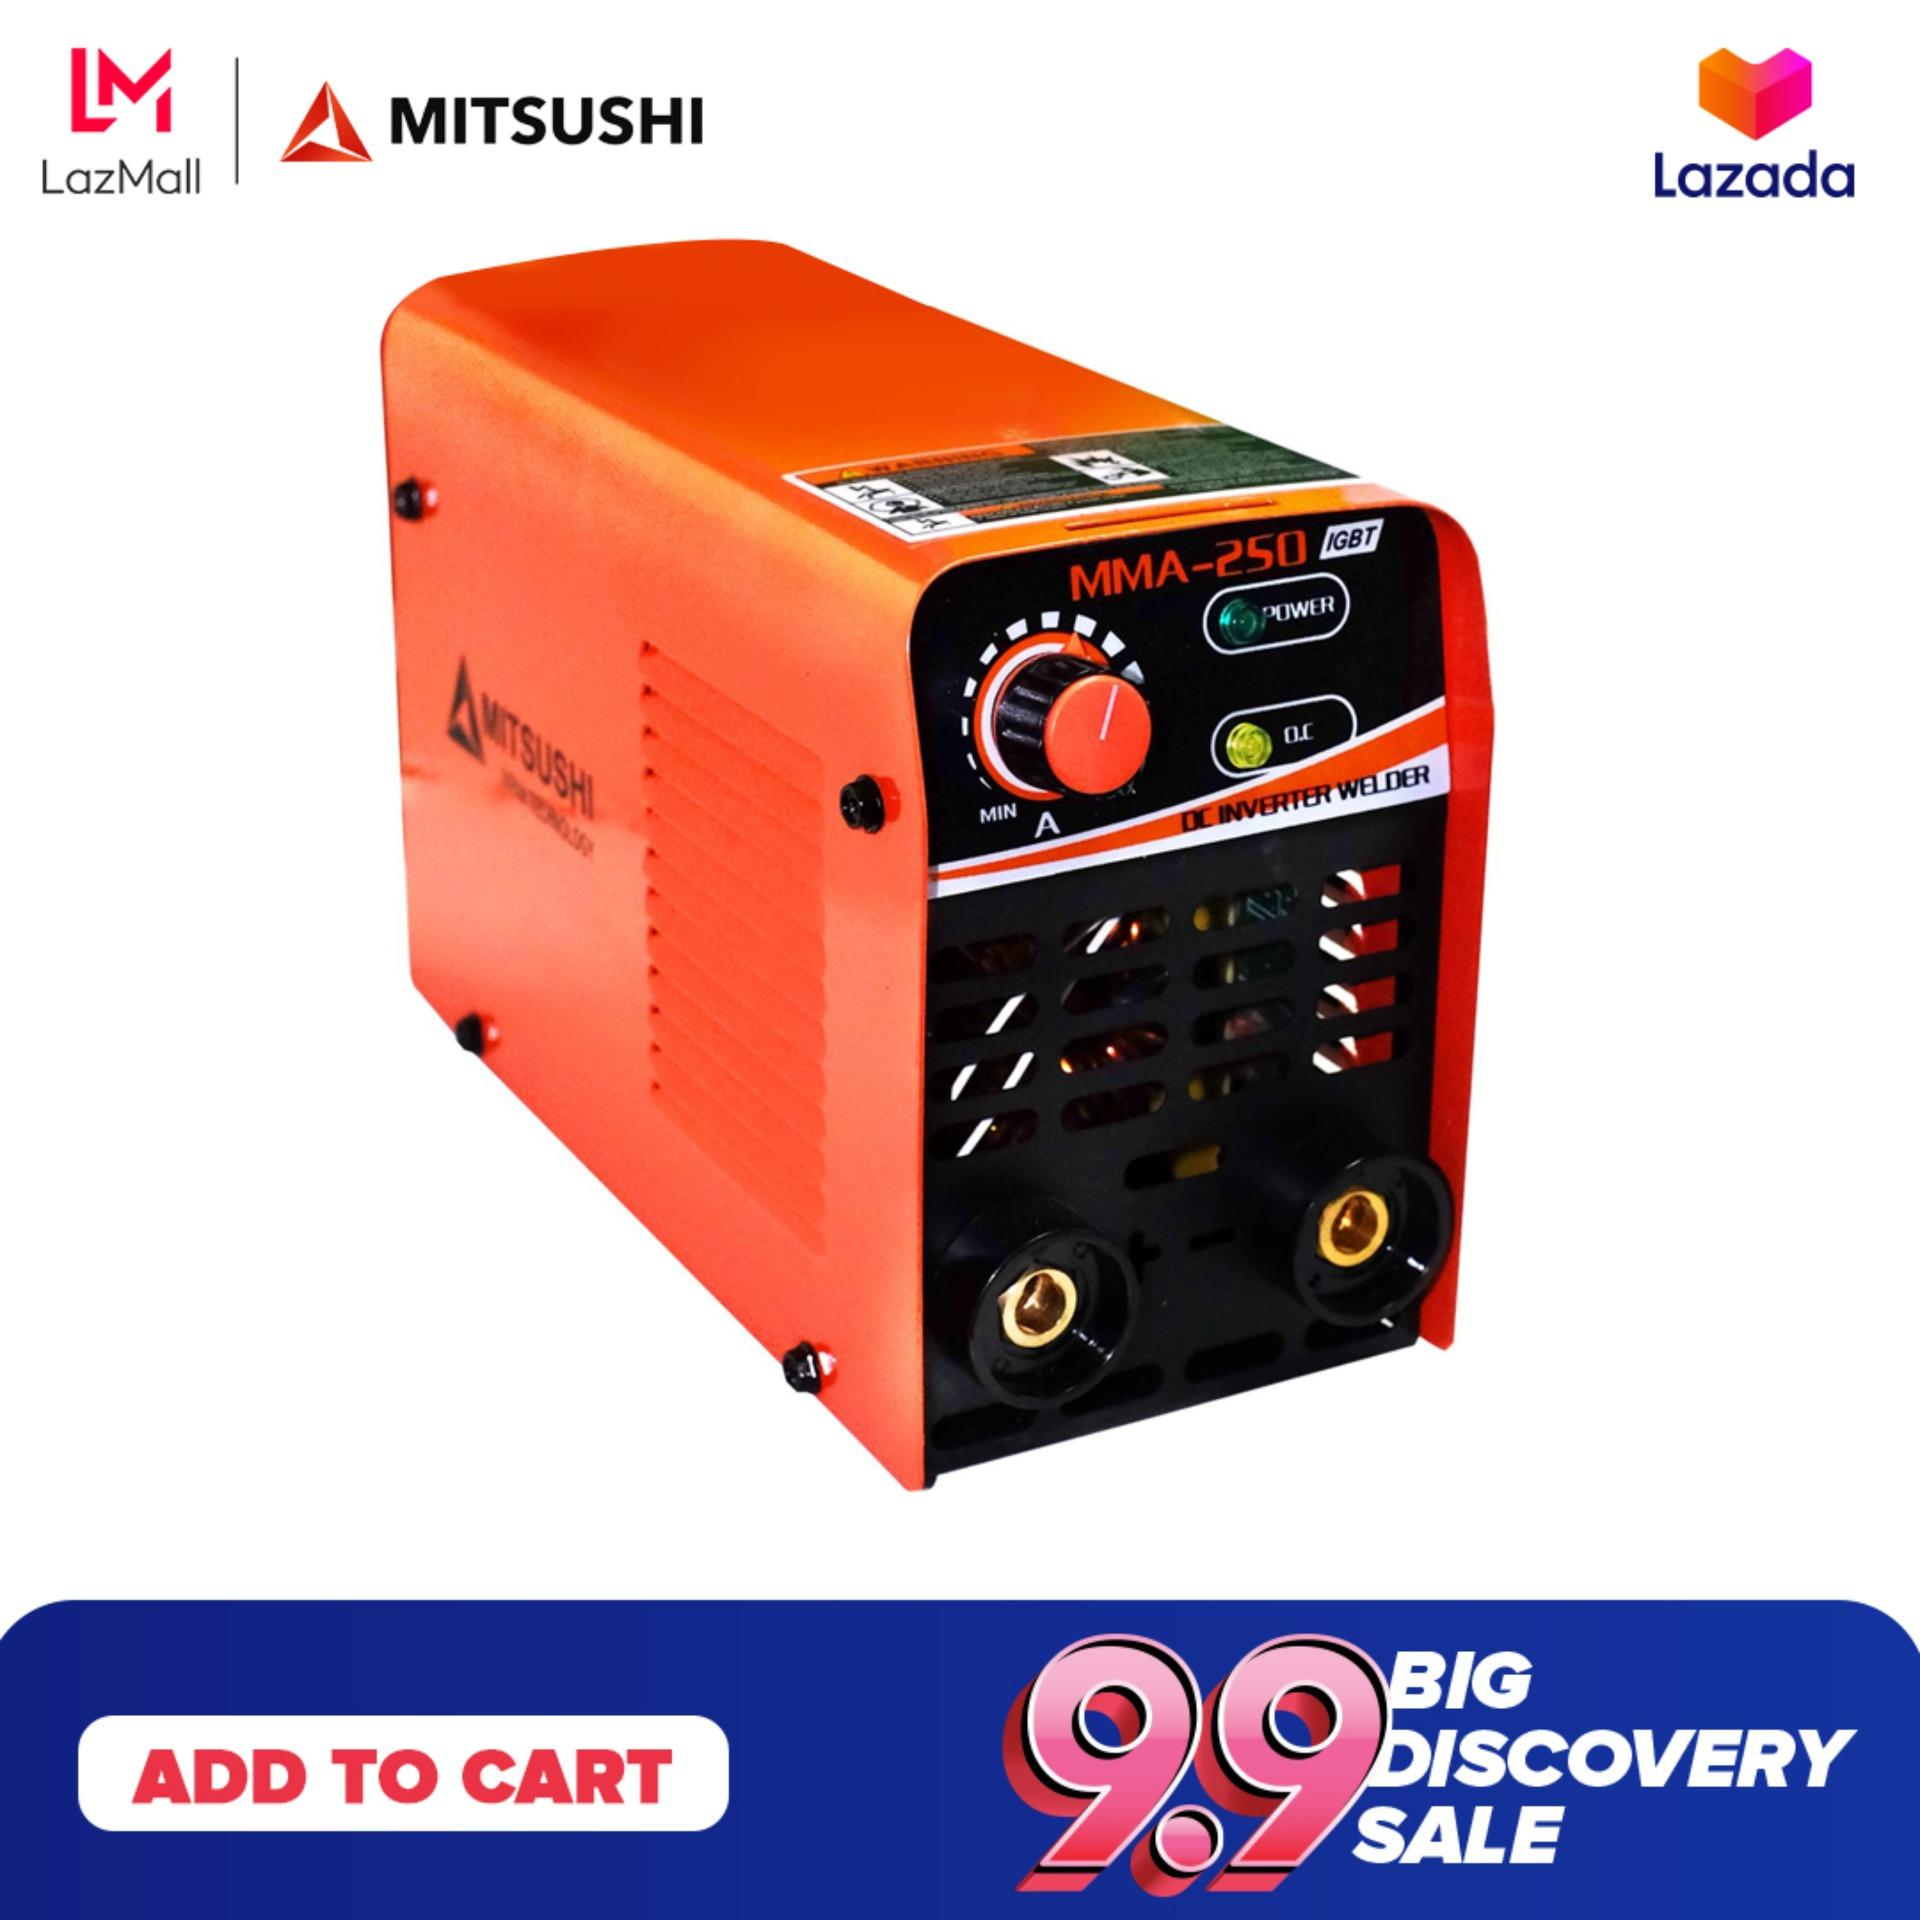 Mitsushi NI MMA 250A IGBT Technology Inverter Welding Machine